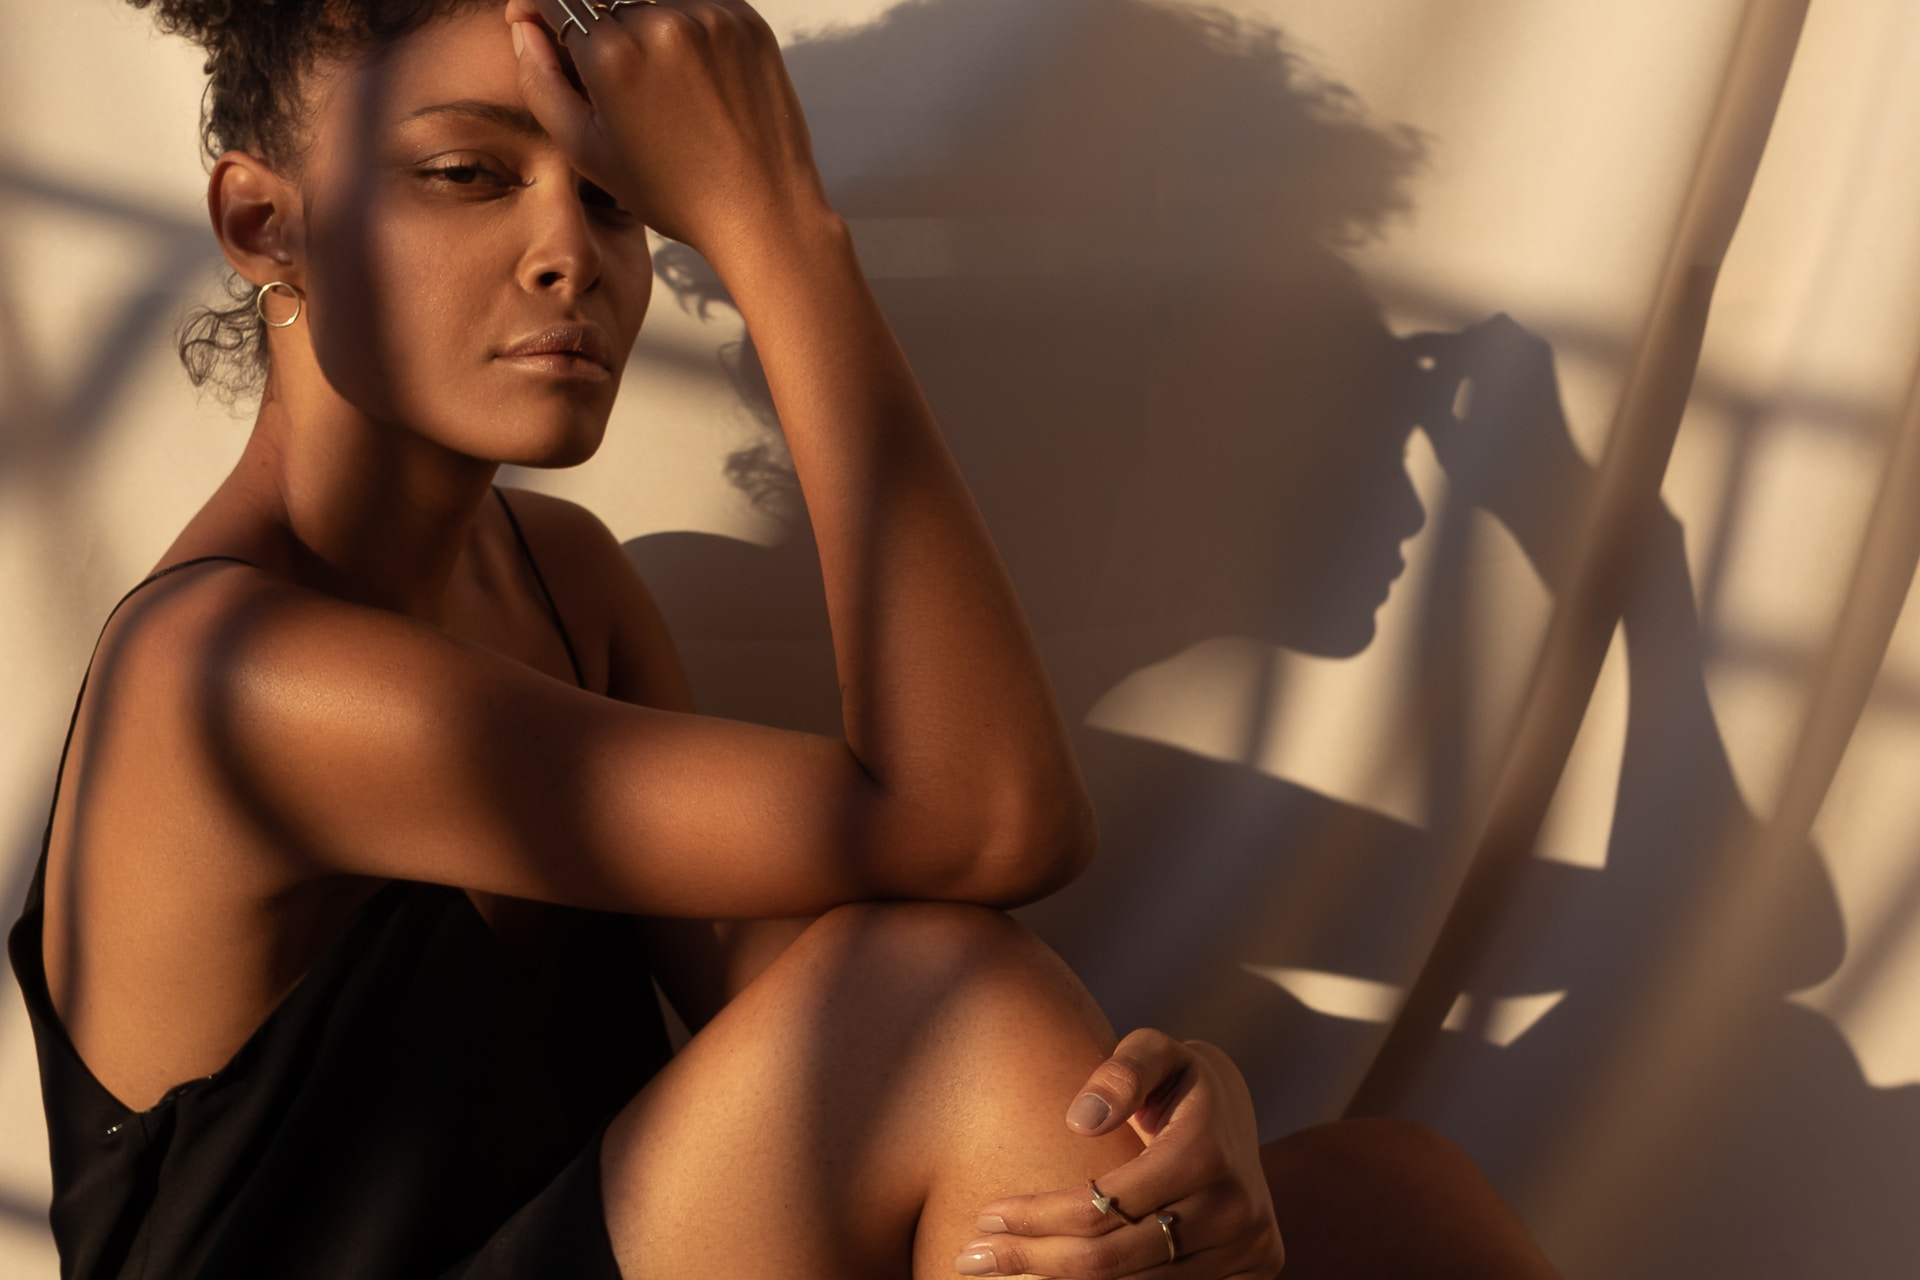 woman wearing black spaghetti strap dress sitting while touching her forehead